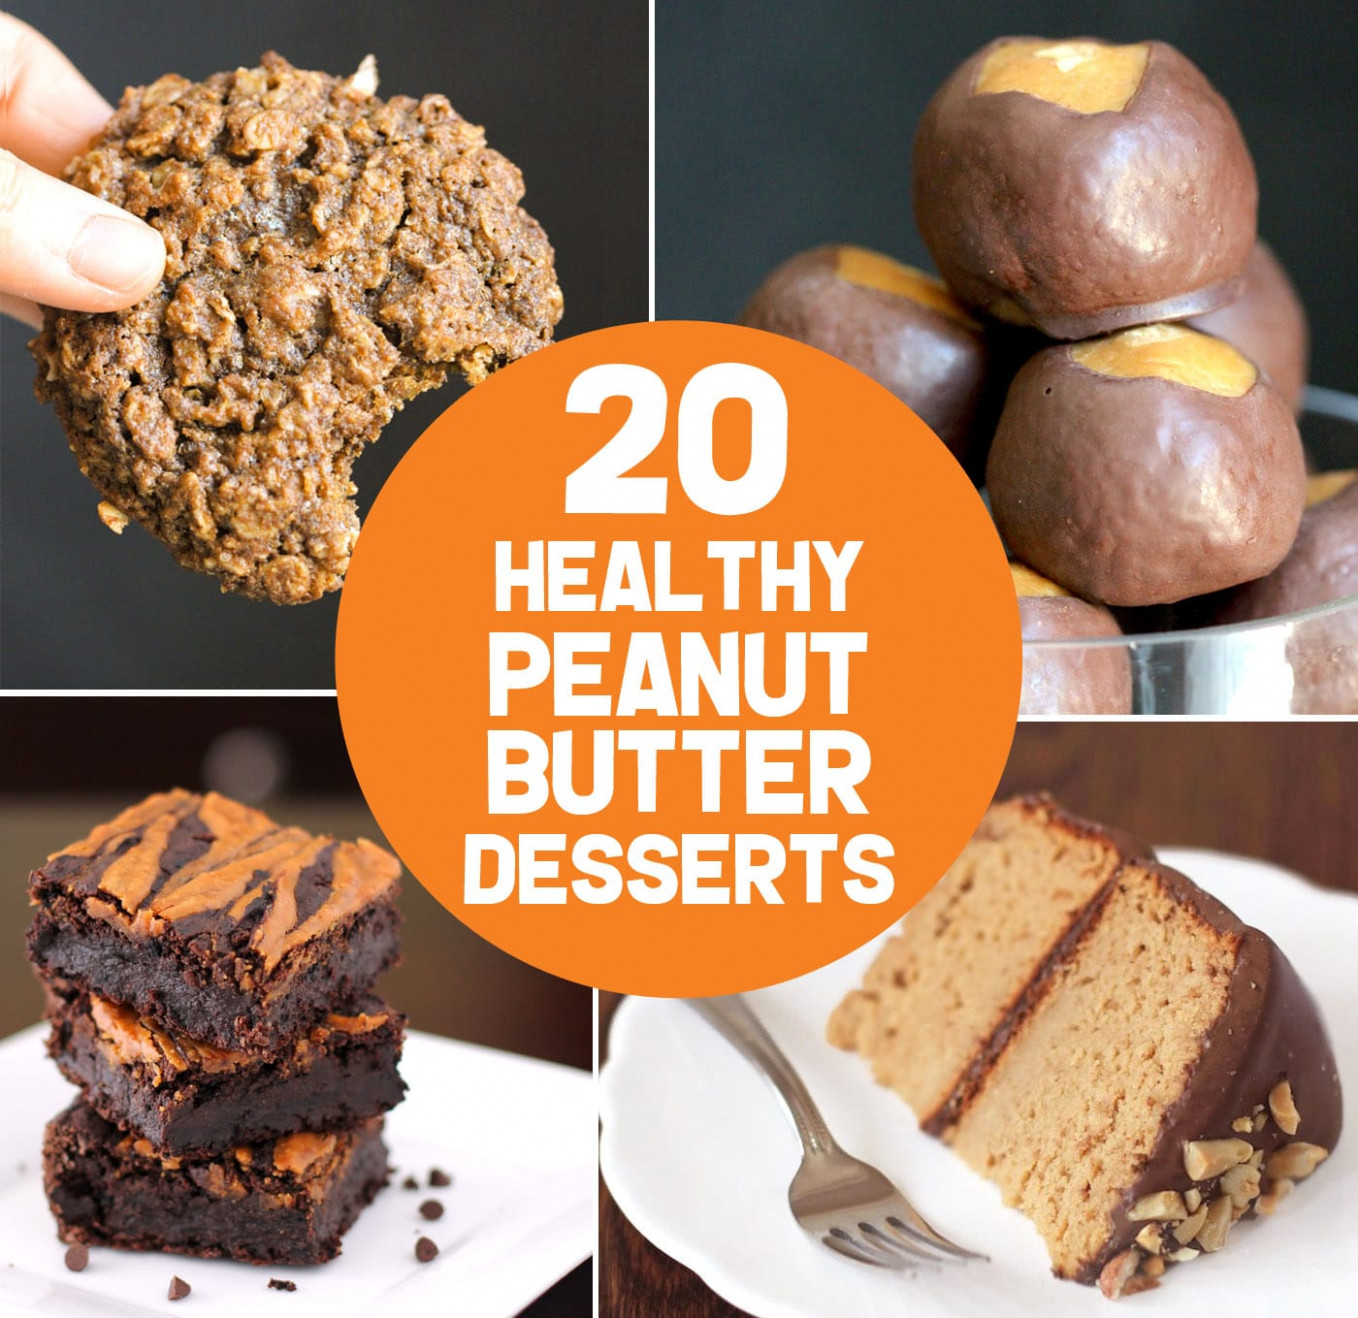 20 Healthy Peanut Butter Dessert Recipes | gluten free ...